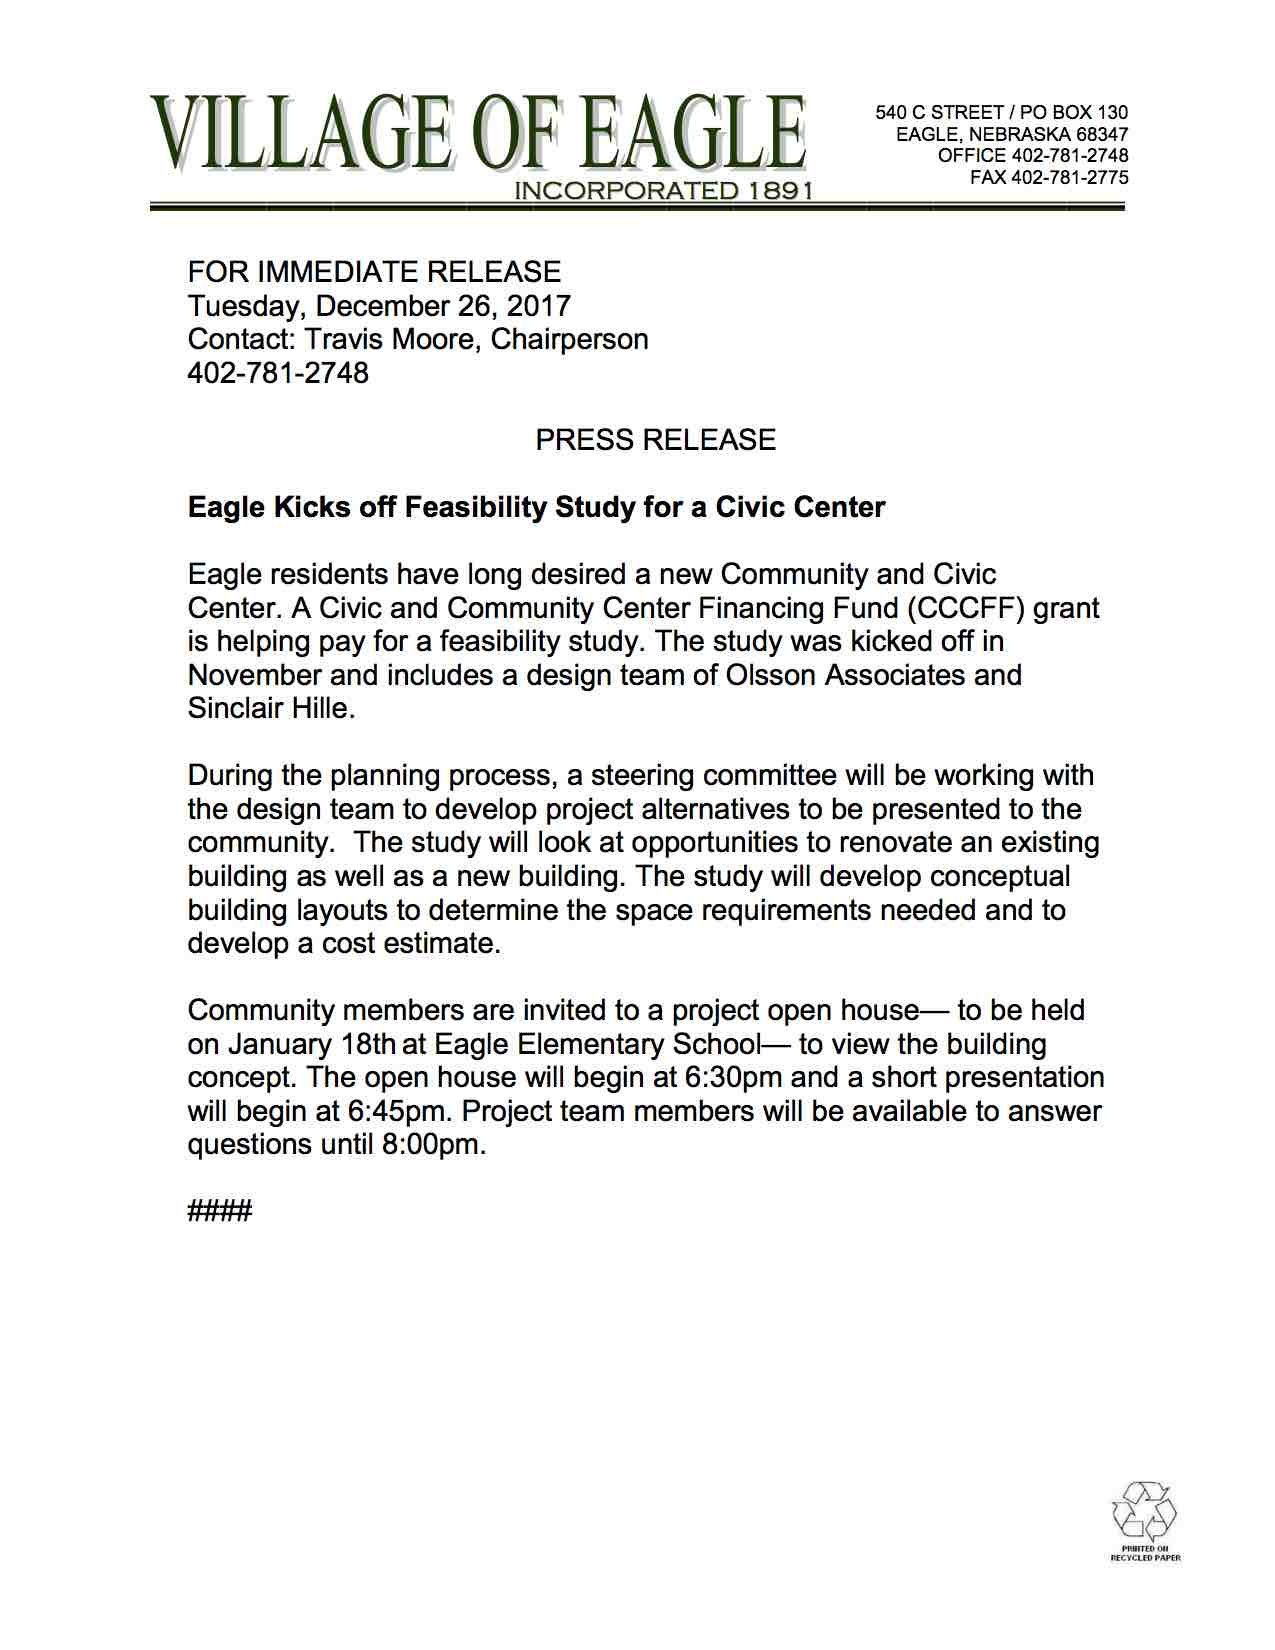 Civic Center Feasibility Study Press Release